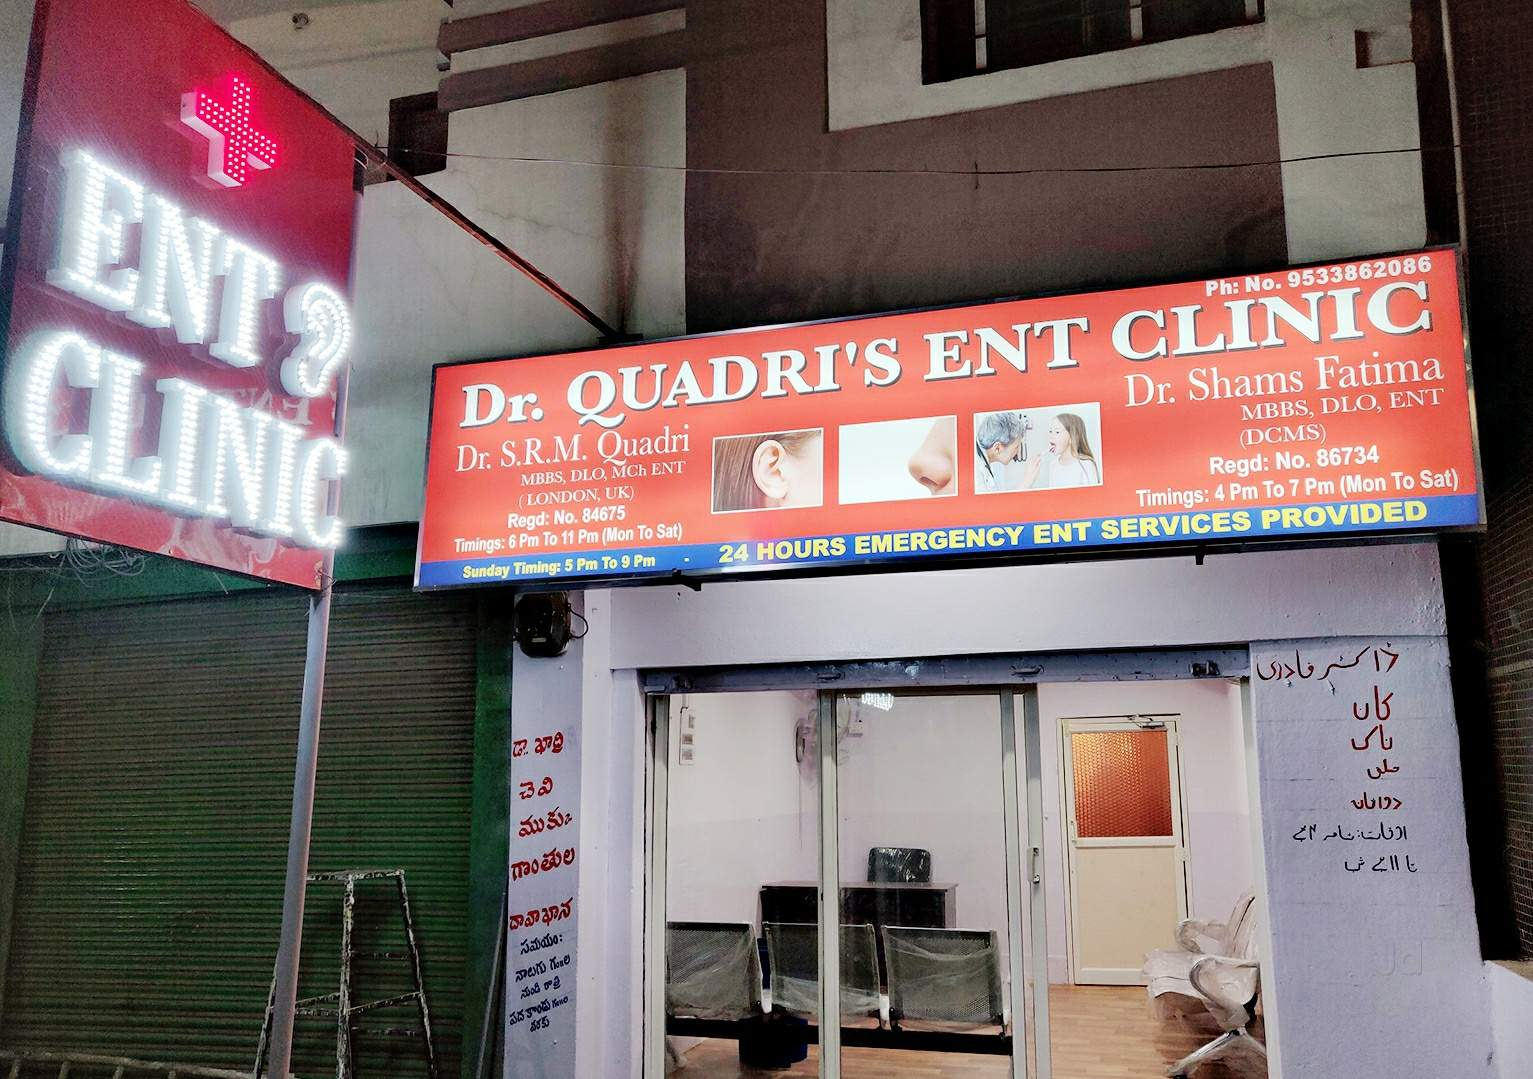 Government Ent Hospital, Koti   Hospitals in Hyderabad   Justdial